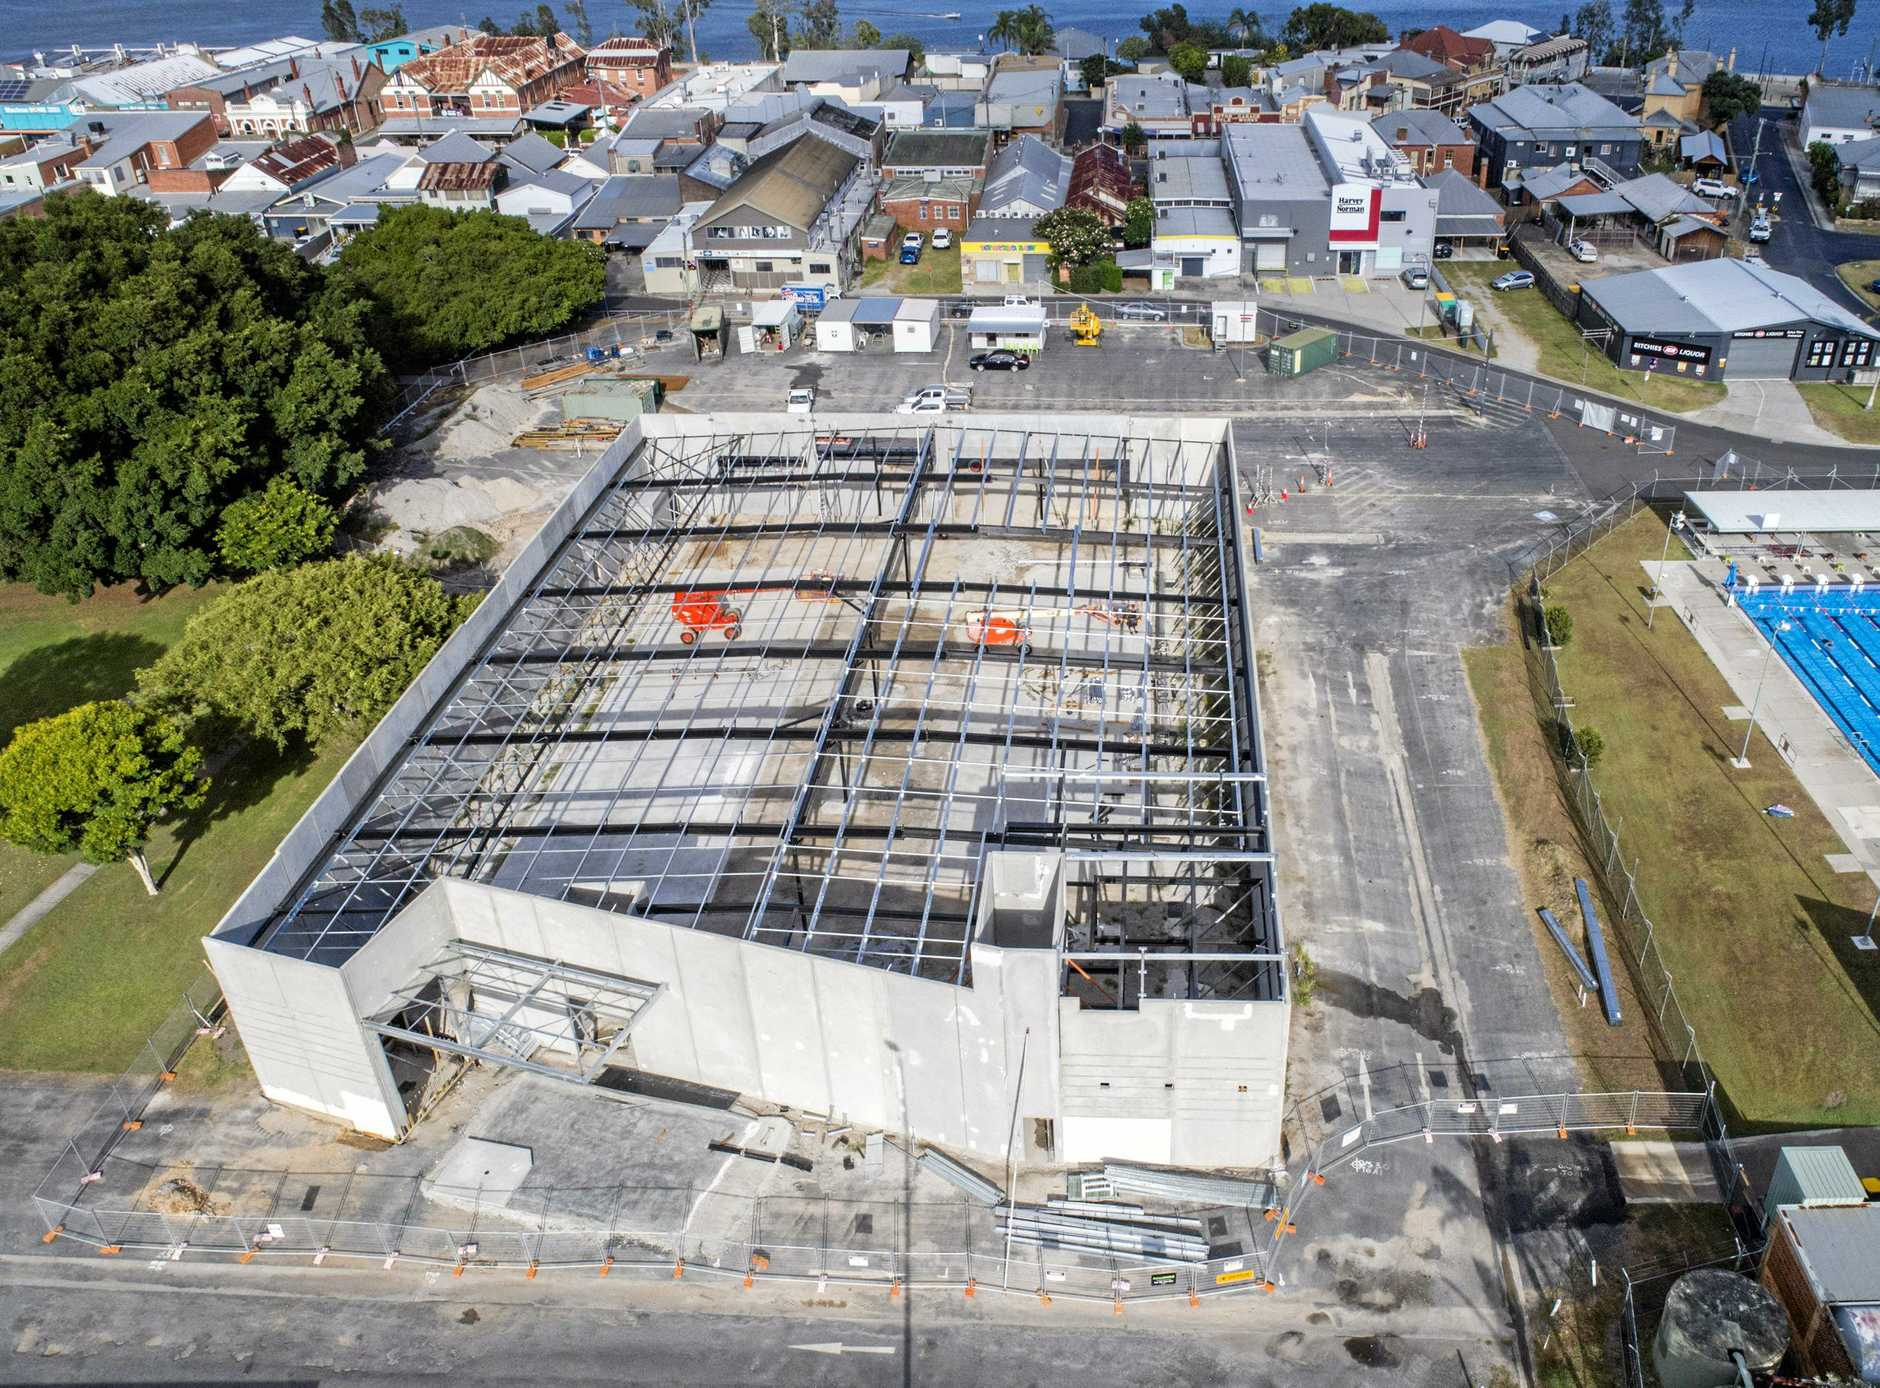 GOING UP: An aerial view of the construction works to build Maclean's IGA supermarket.